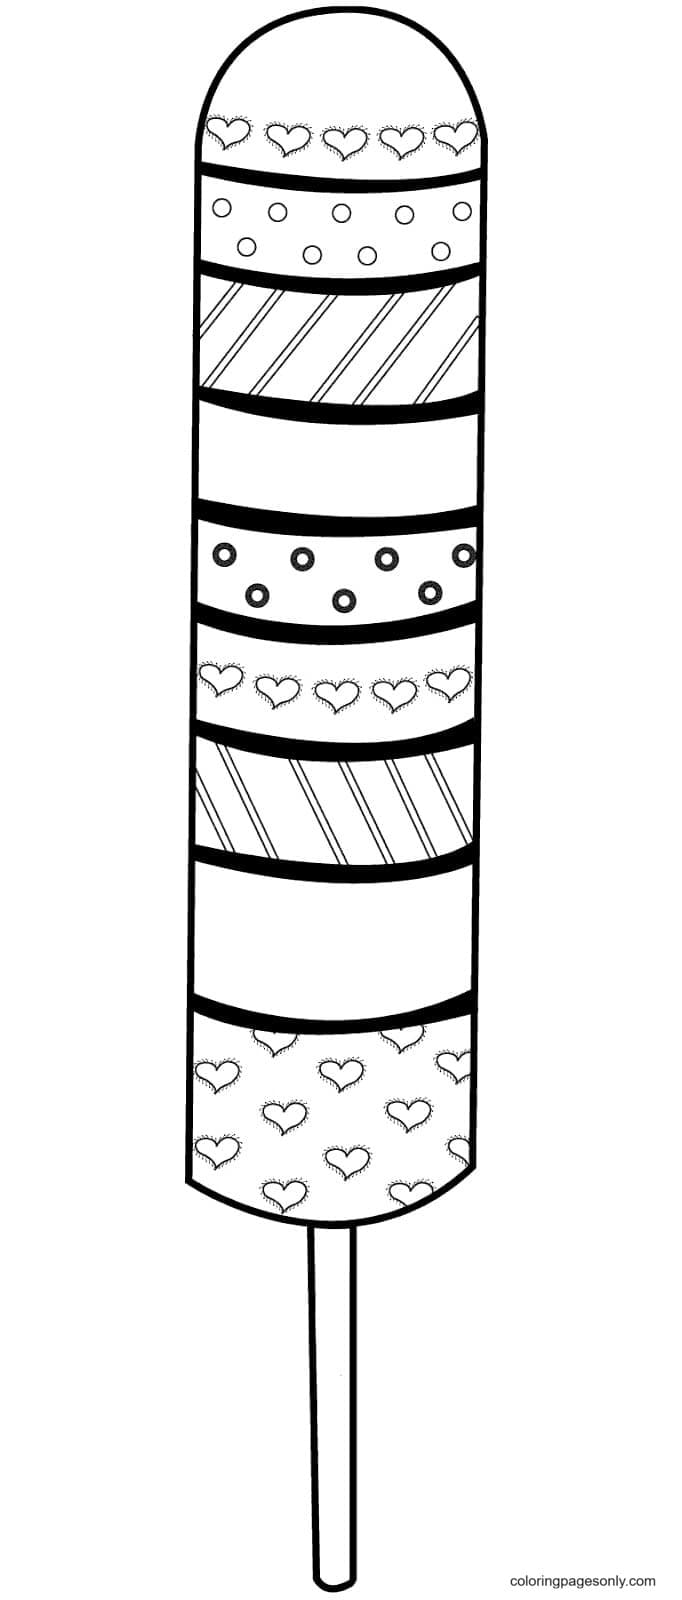 Sweet Summer Popsicles Coloring Page